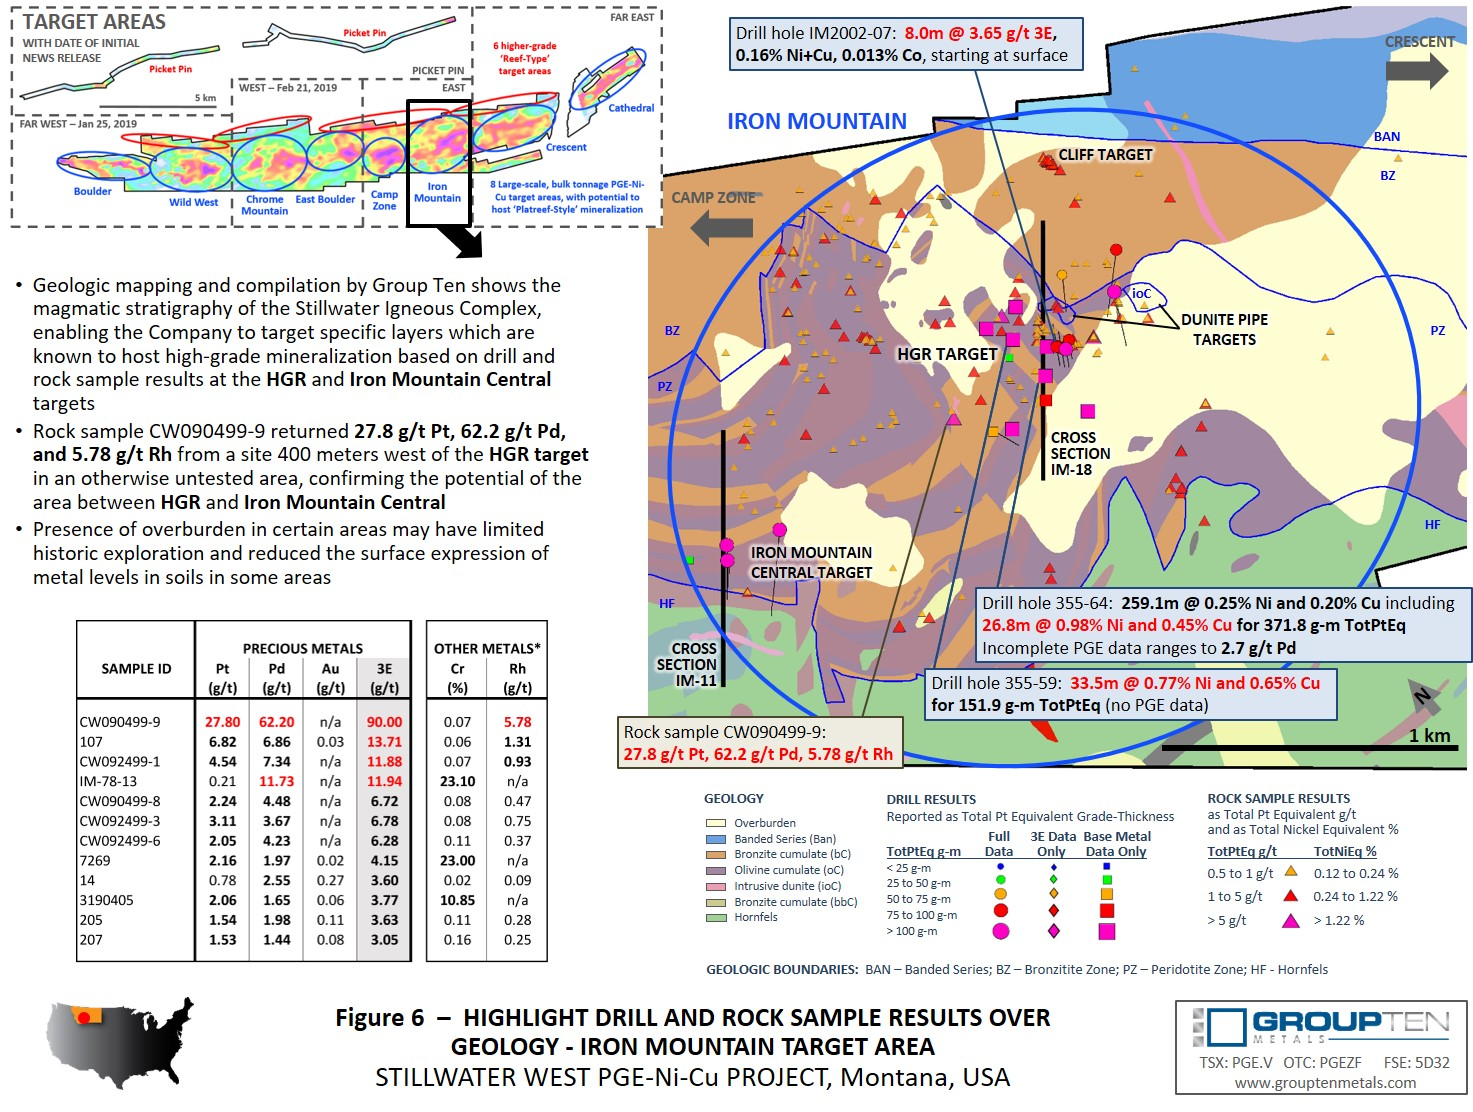 Figure 6  –  HIGHLIGHT DRILL AND ROCK SAMPLE RESULTS OVER GEOLOGY - IRON MOUNTAIN TARGET AREA